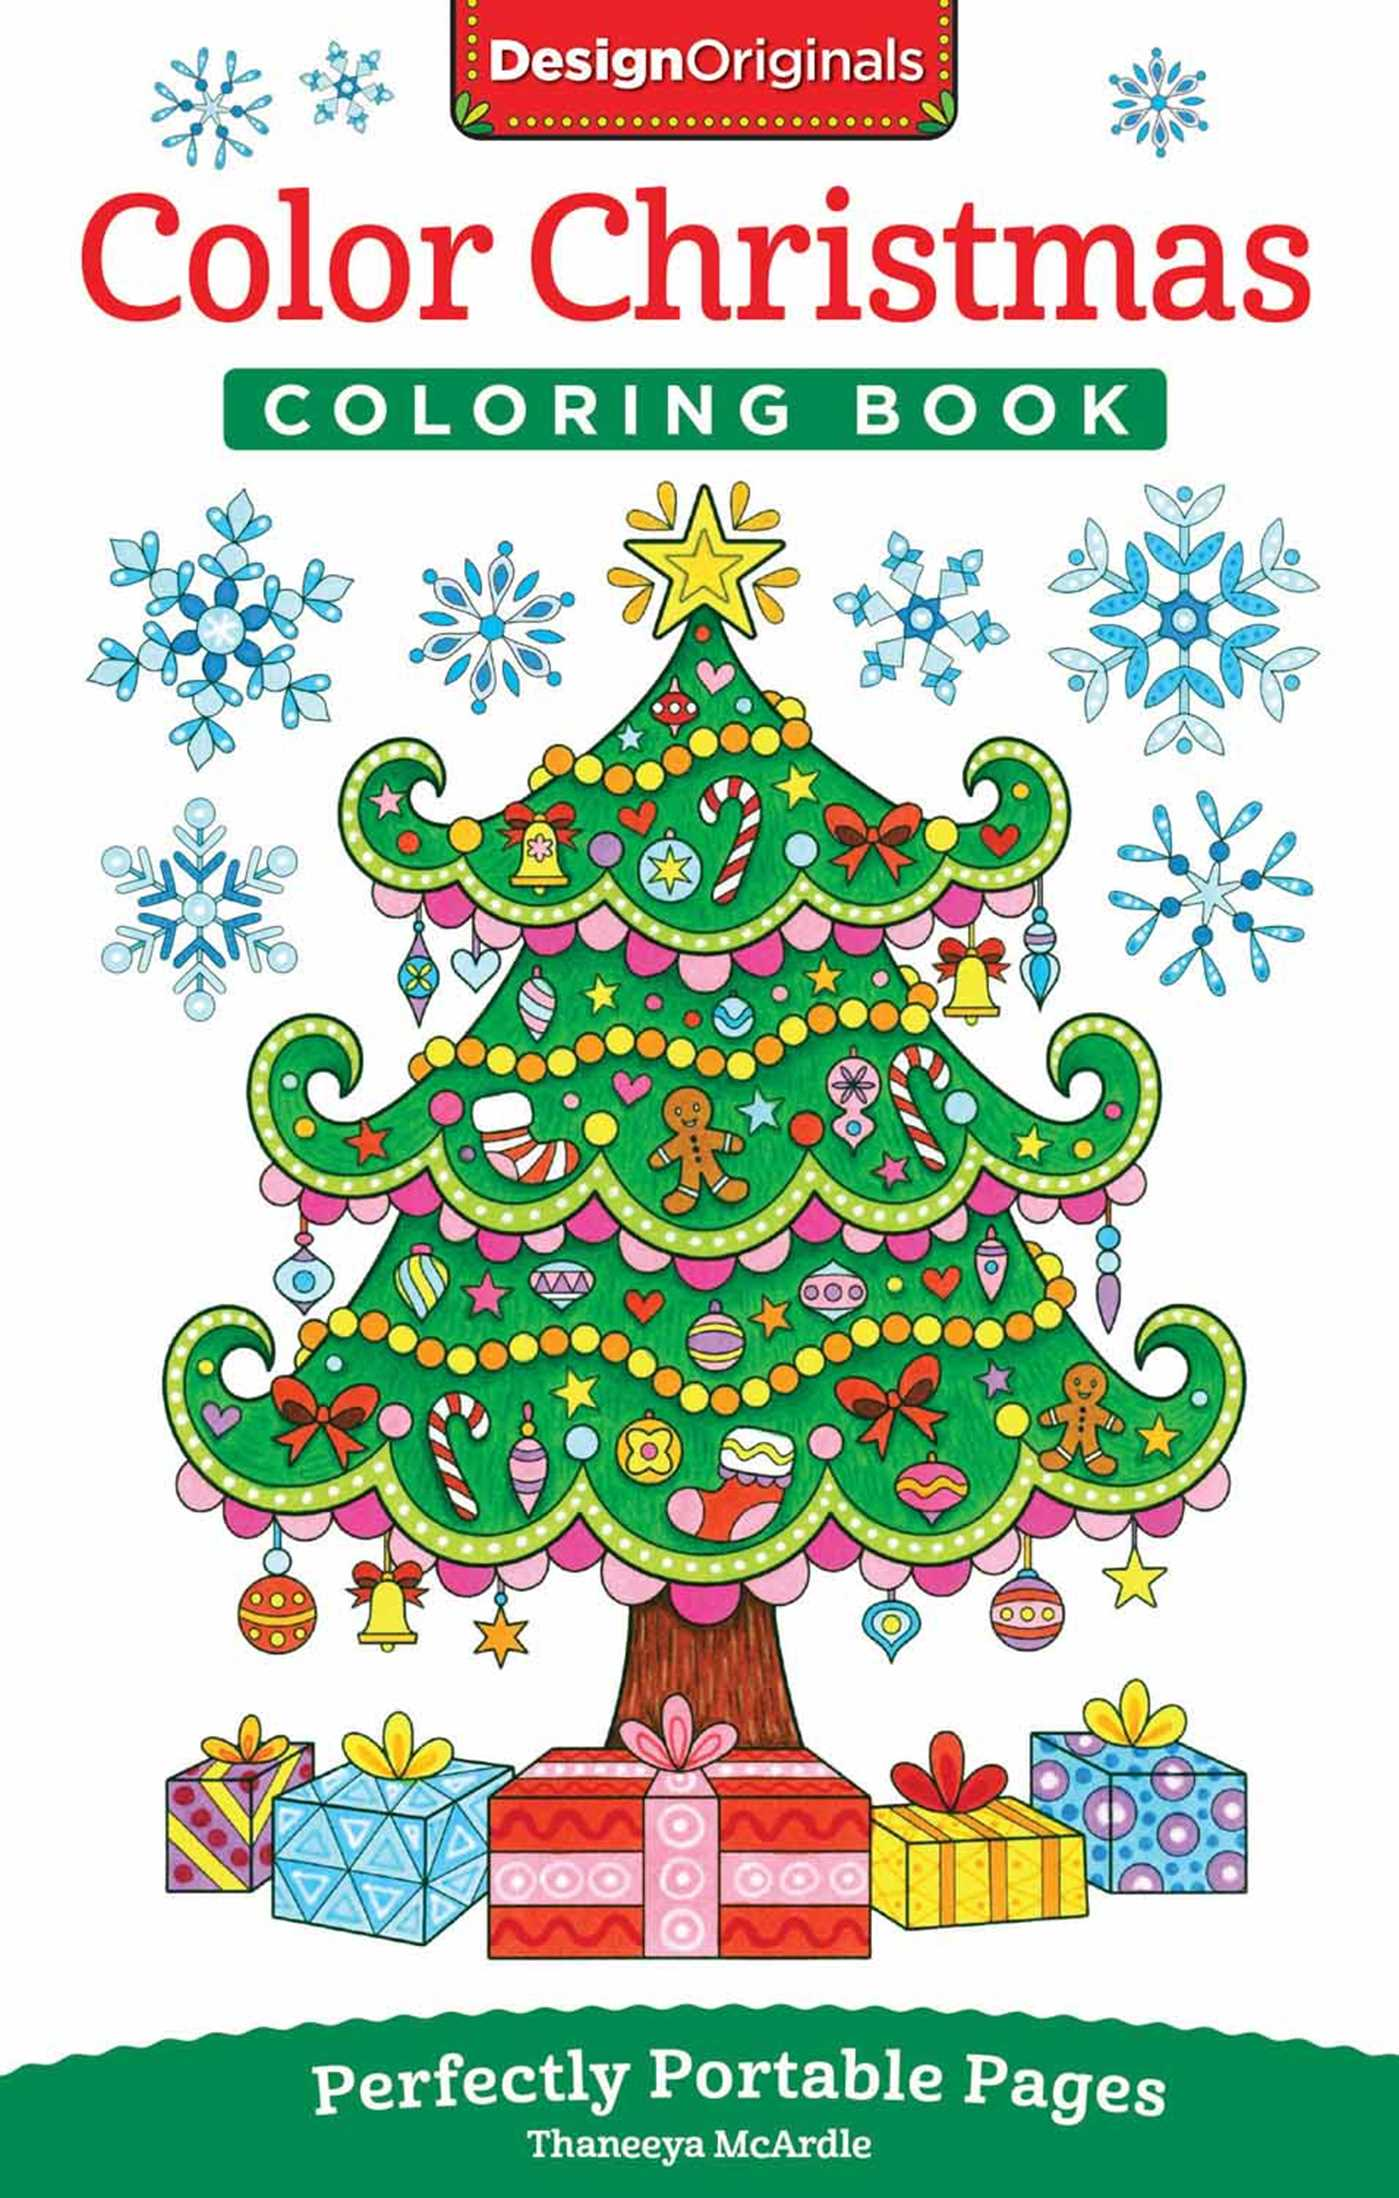 Book Cover Image Jpg Color Christmas Coloring